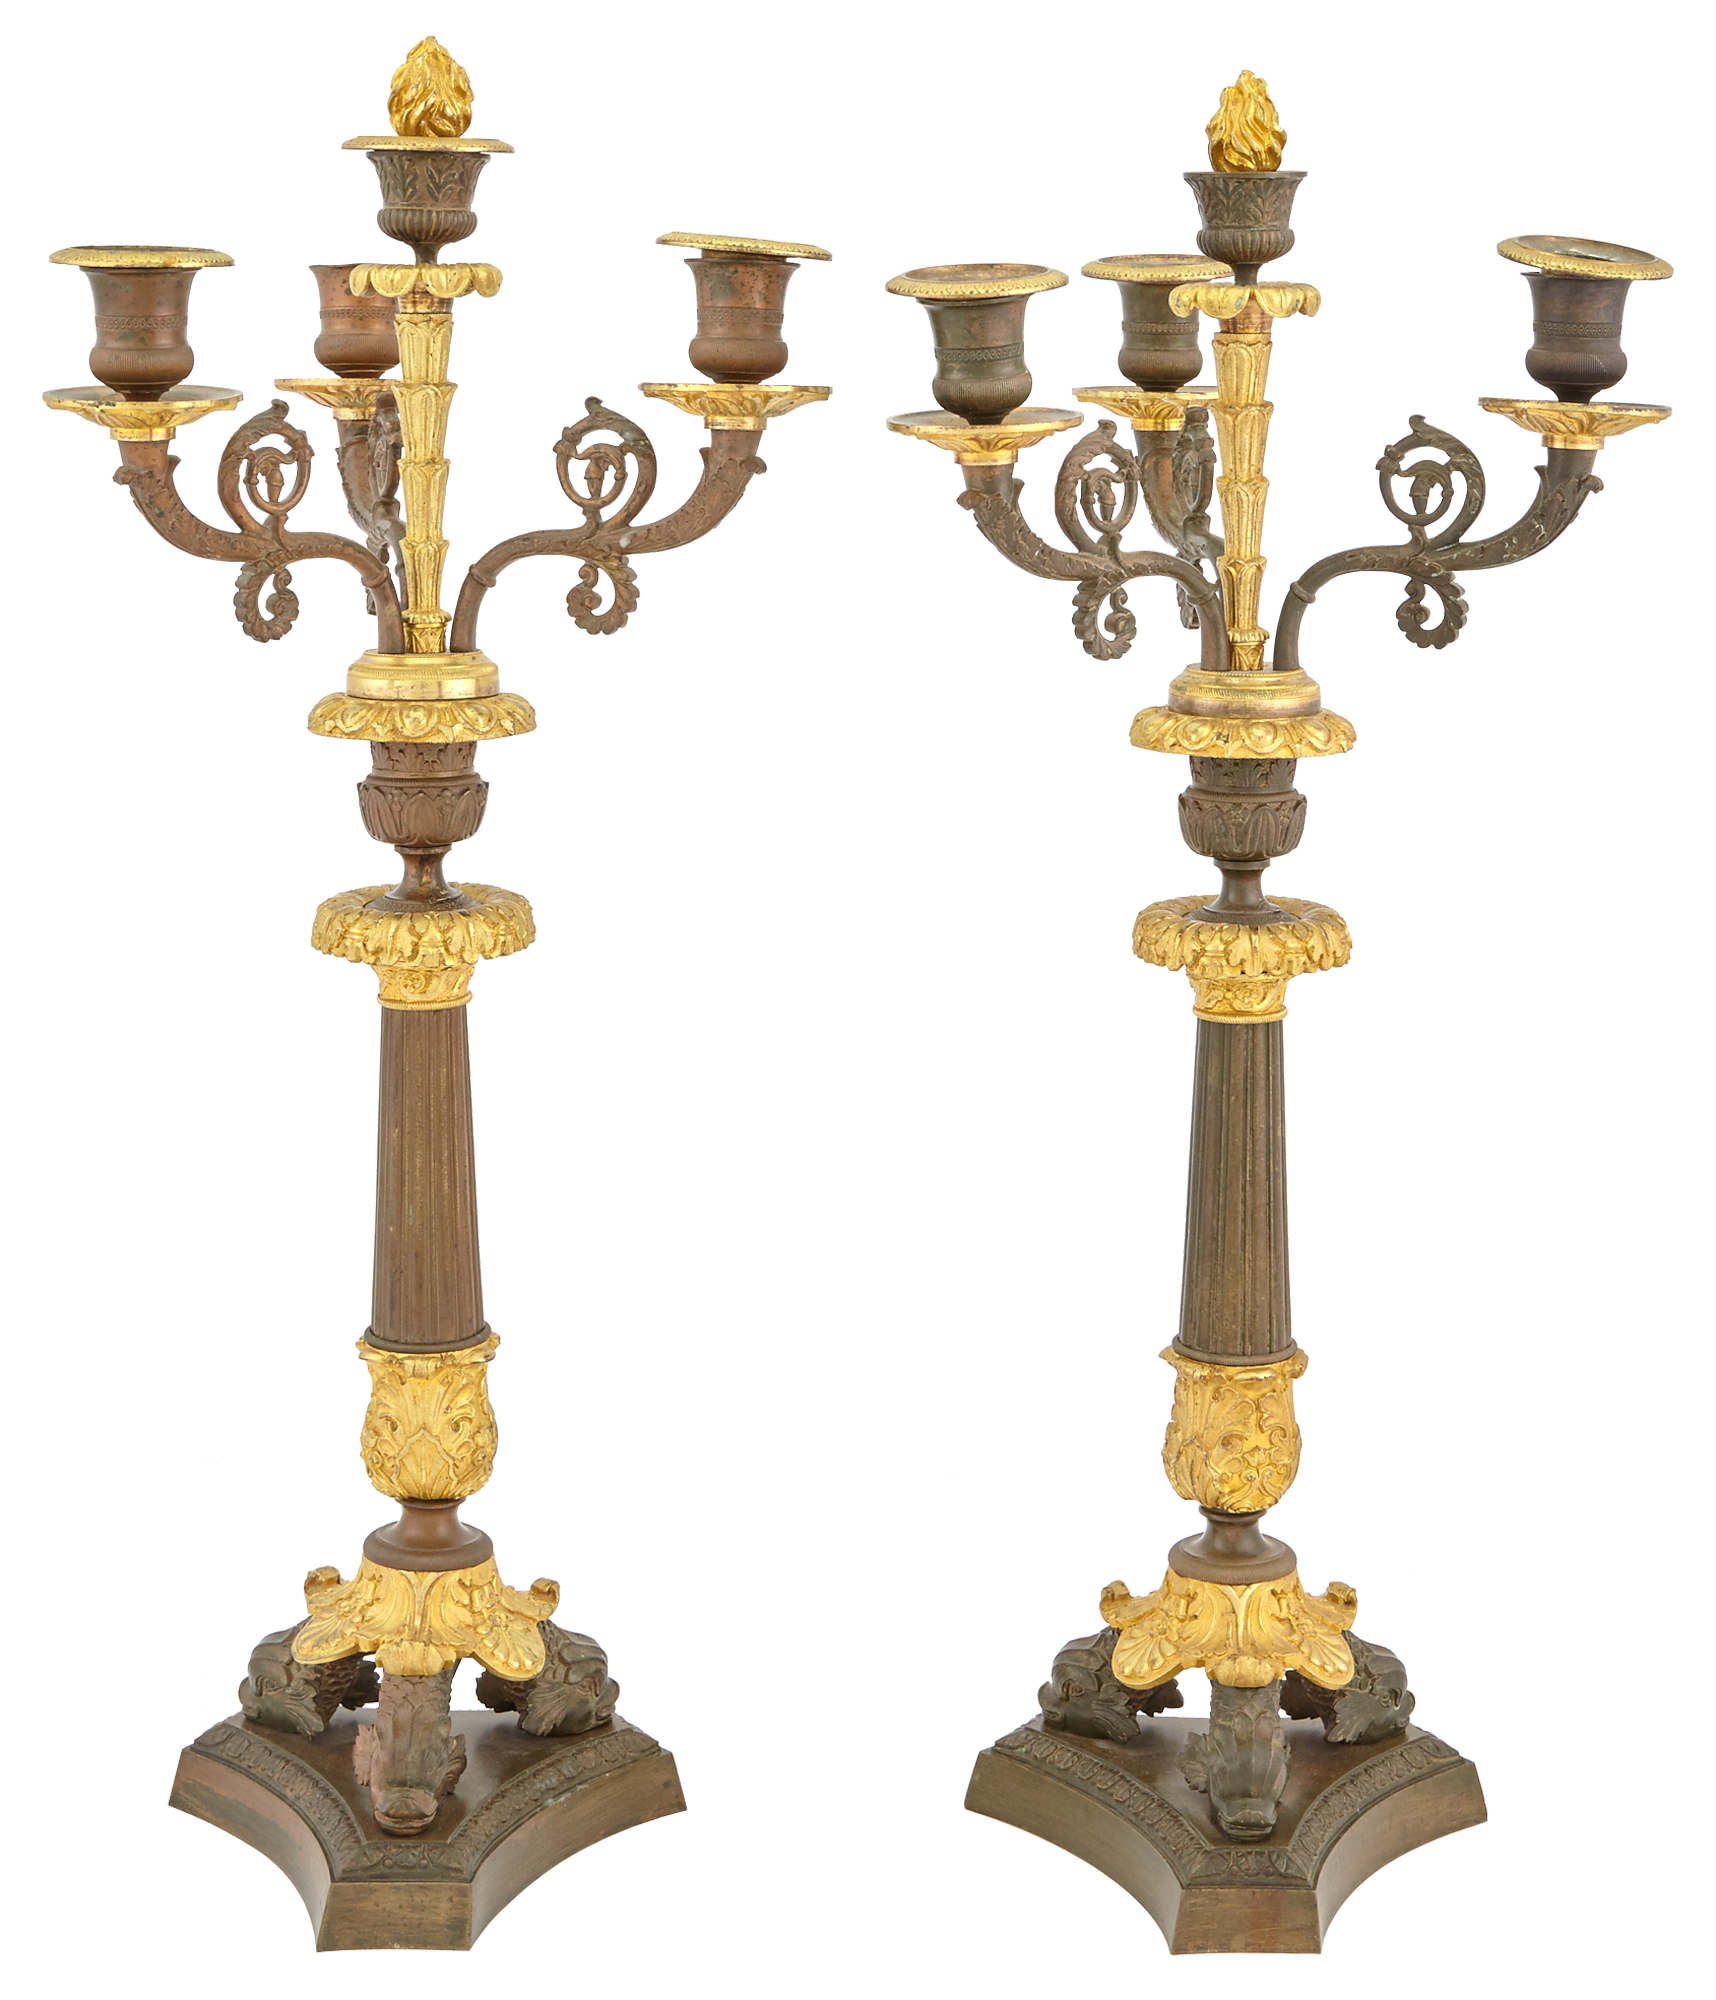 Lot image - Pair of Restauration Gilt and Patinated-Bronze Four-Light Candelabra